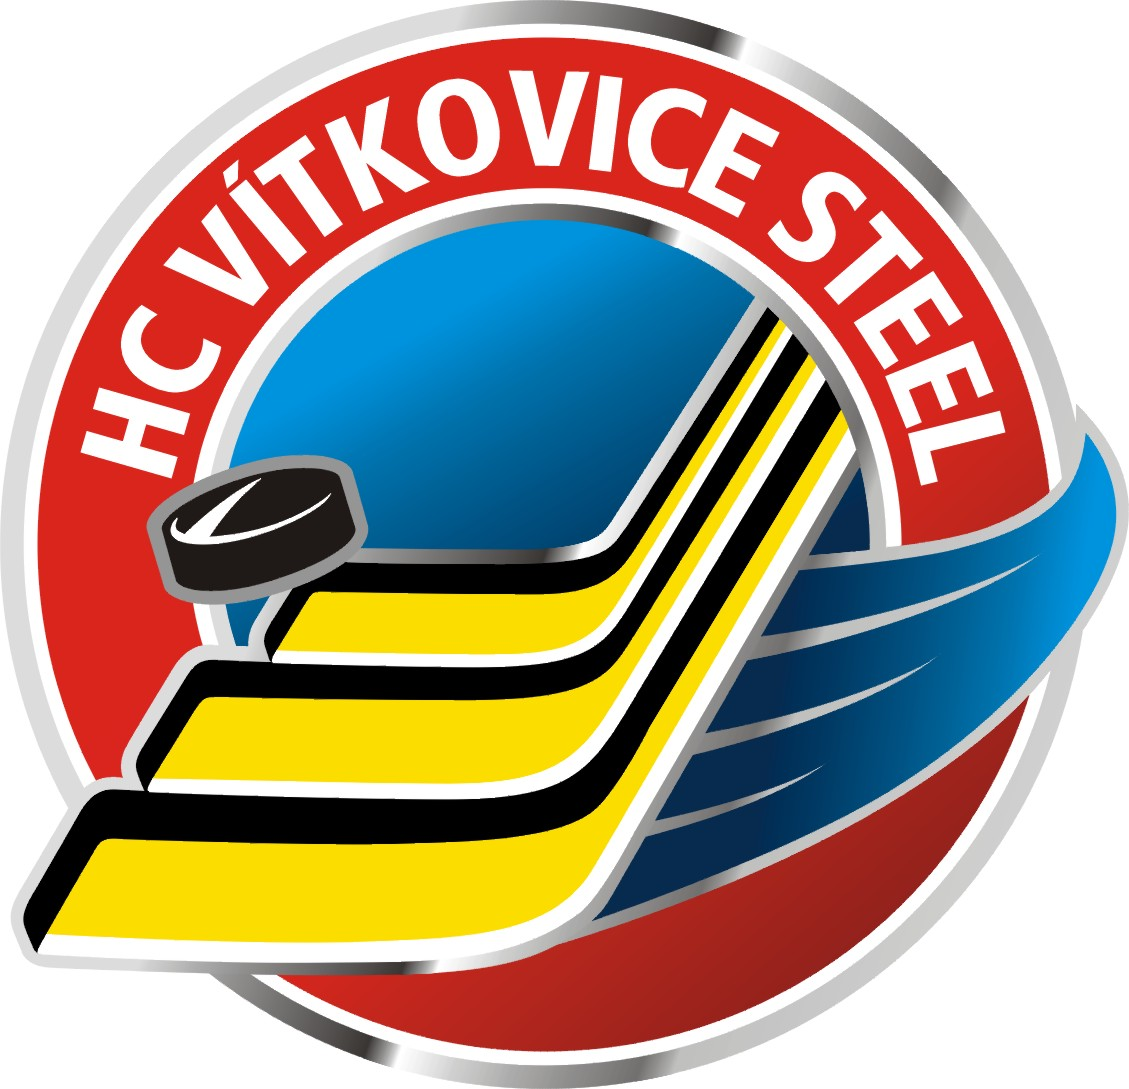 Partner HC VÍTKOVICE STEEL